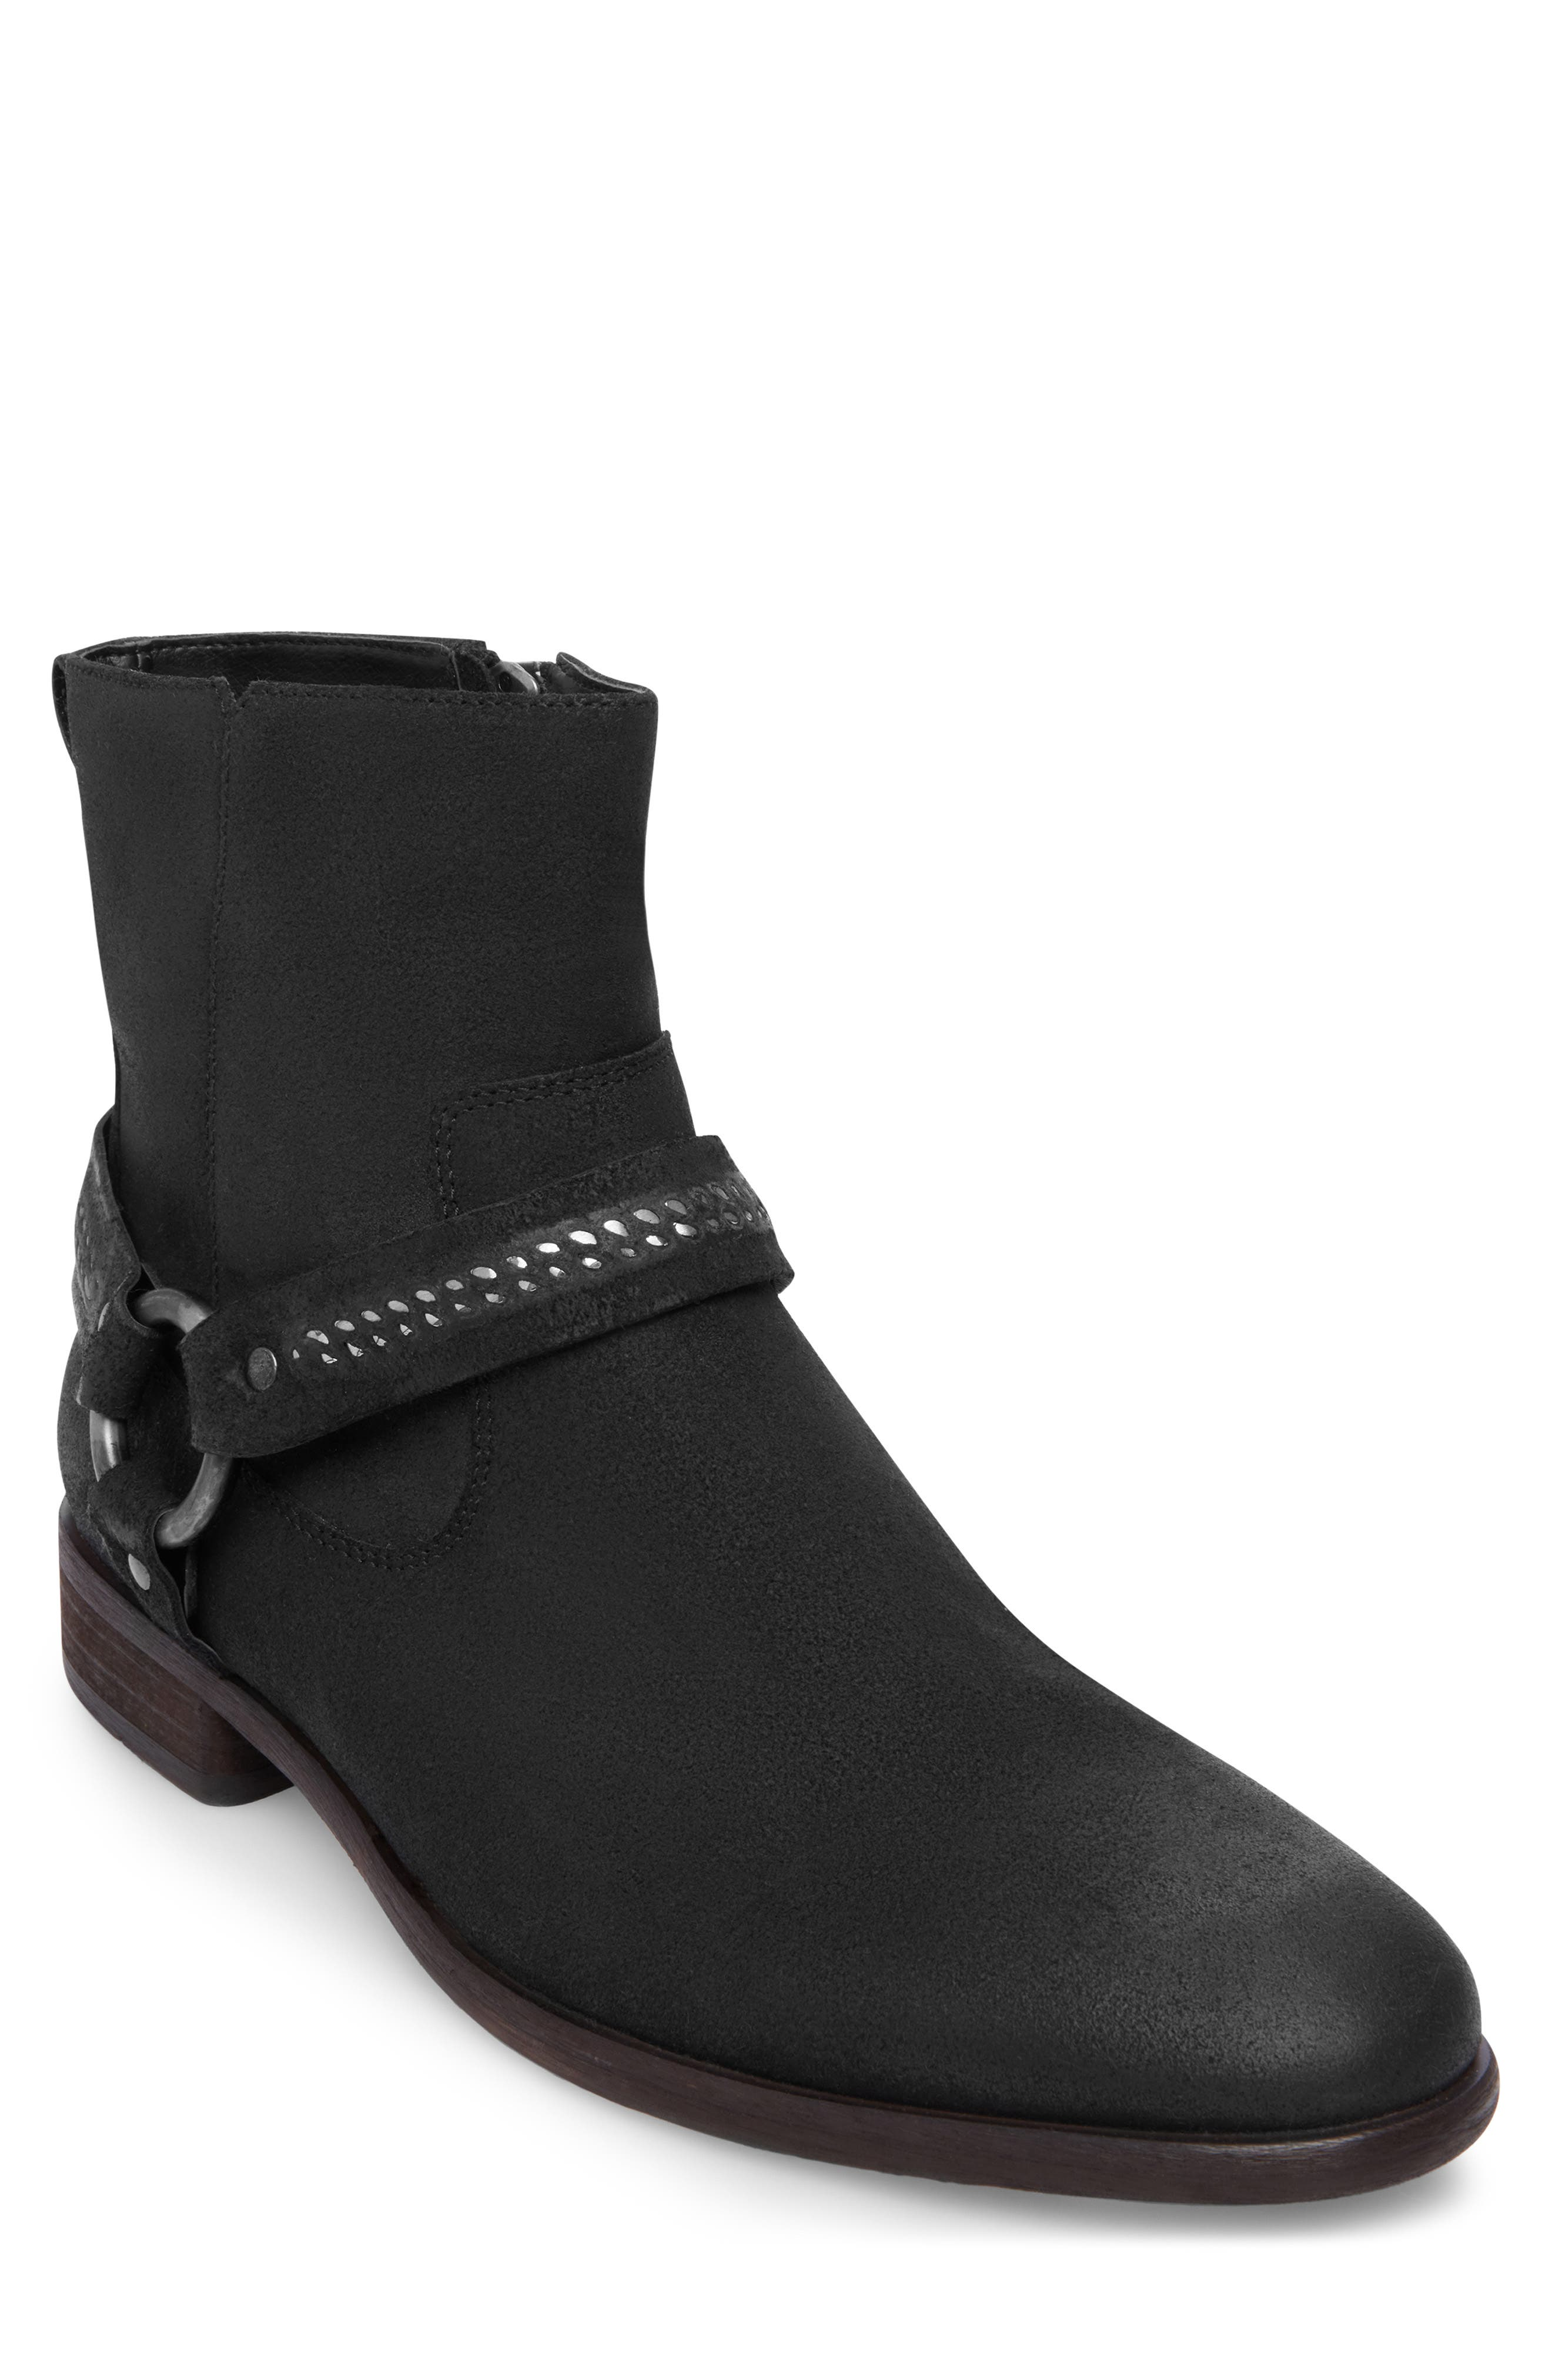 Vancet Engineer Boot,                             Main thumbnail 1, color,                             BLACK LEATHER